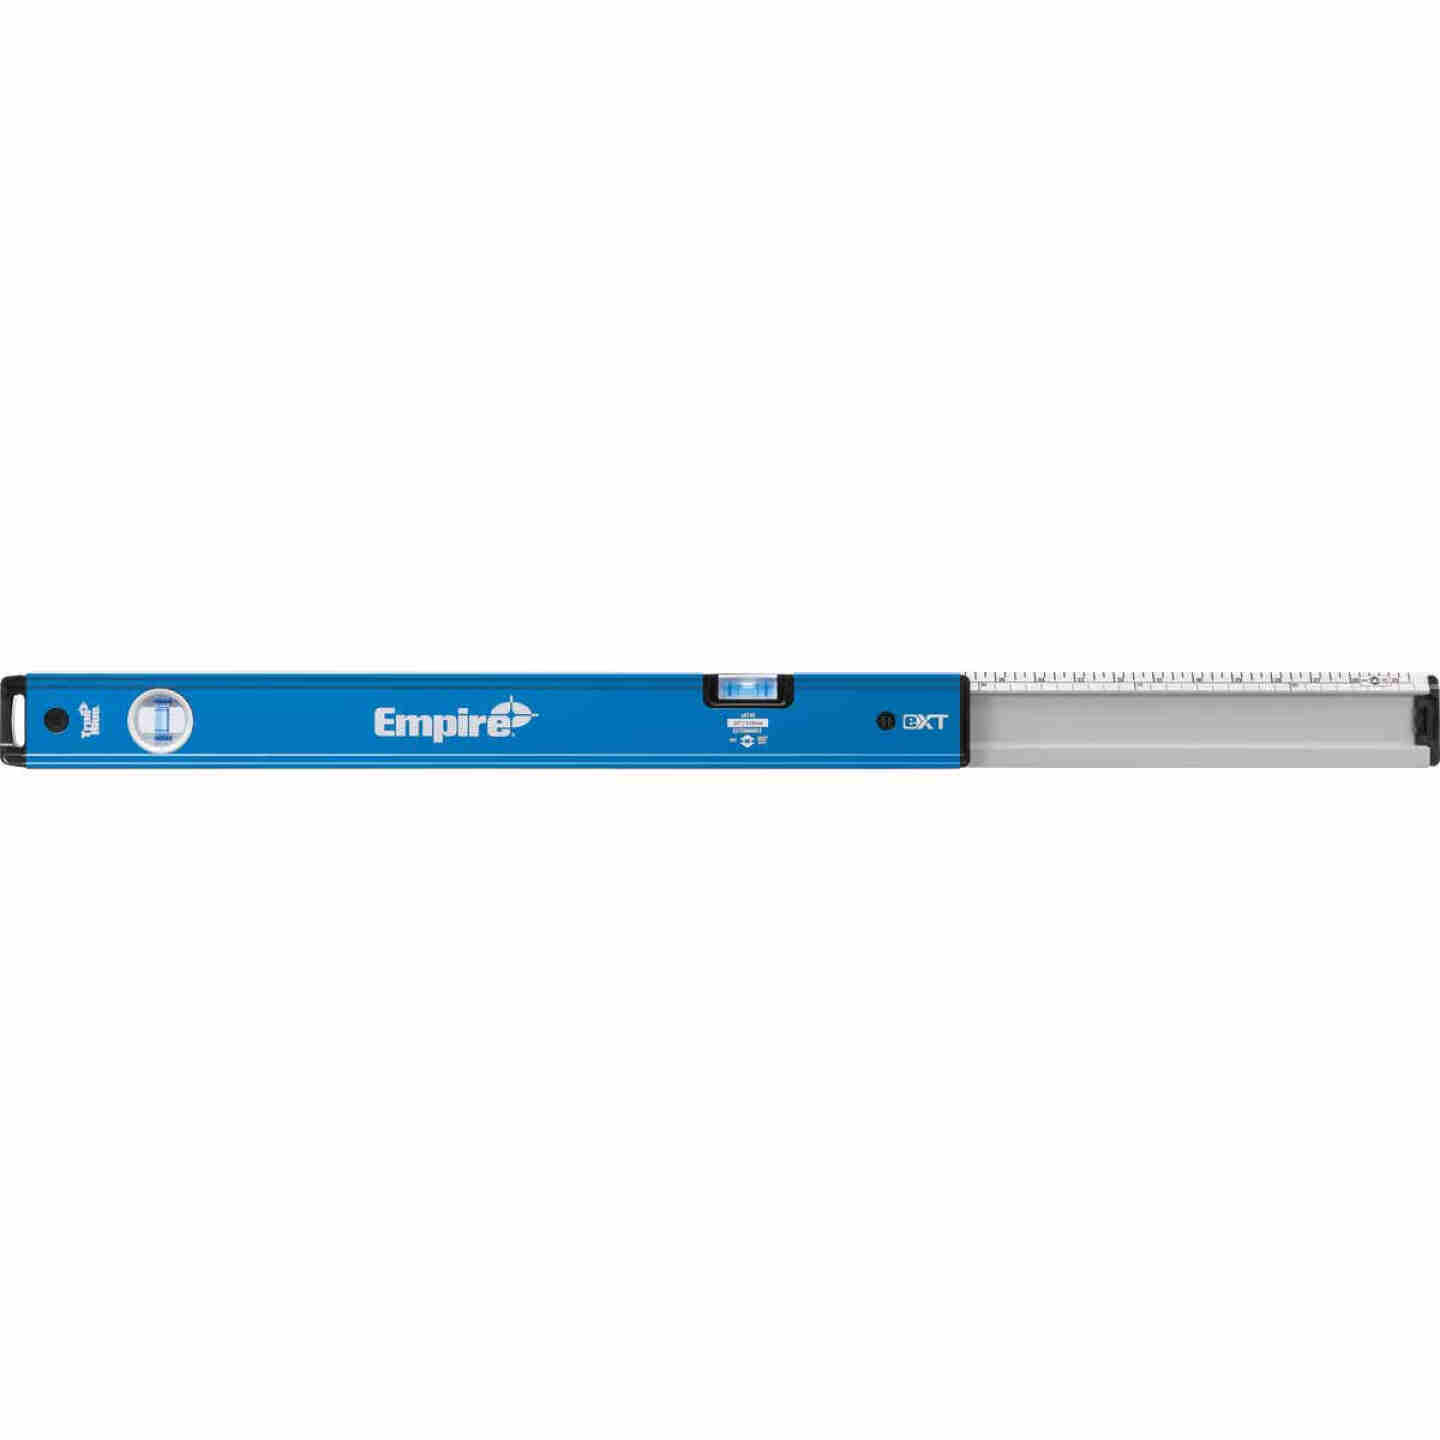 Empire True Blue 24 In. to 40 In. Aluminum Extendable Box Level Image 1